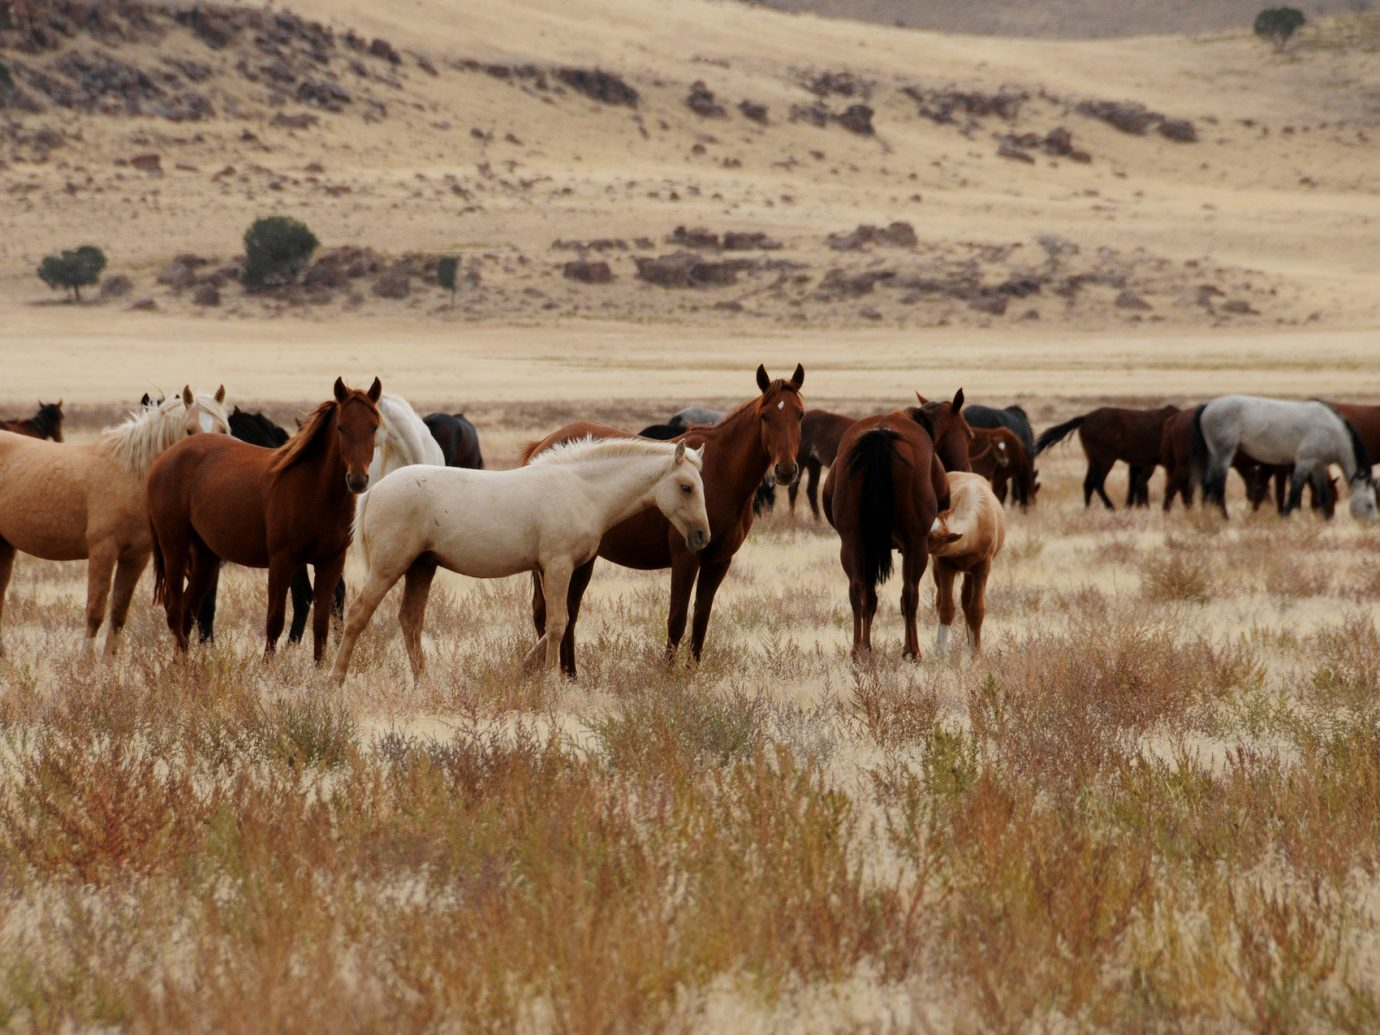 Offbeat outdoor grass habitat mammal herd field horse animal pasture mountain steppe natural environment grassland mare fauna ecosystem mustang horse grazing group brown prairie Wildlife plain landscape horse like mammal savanna